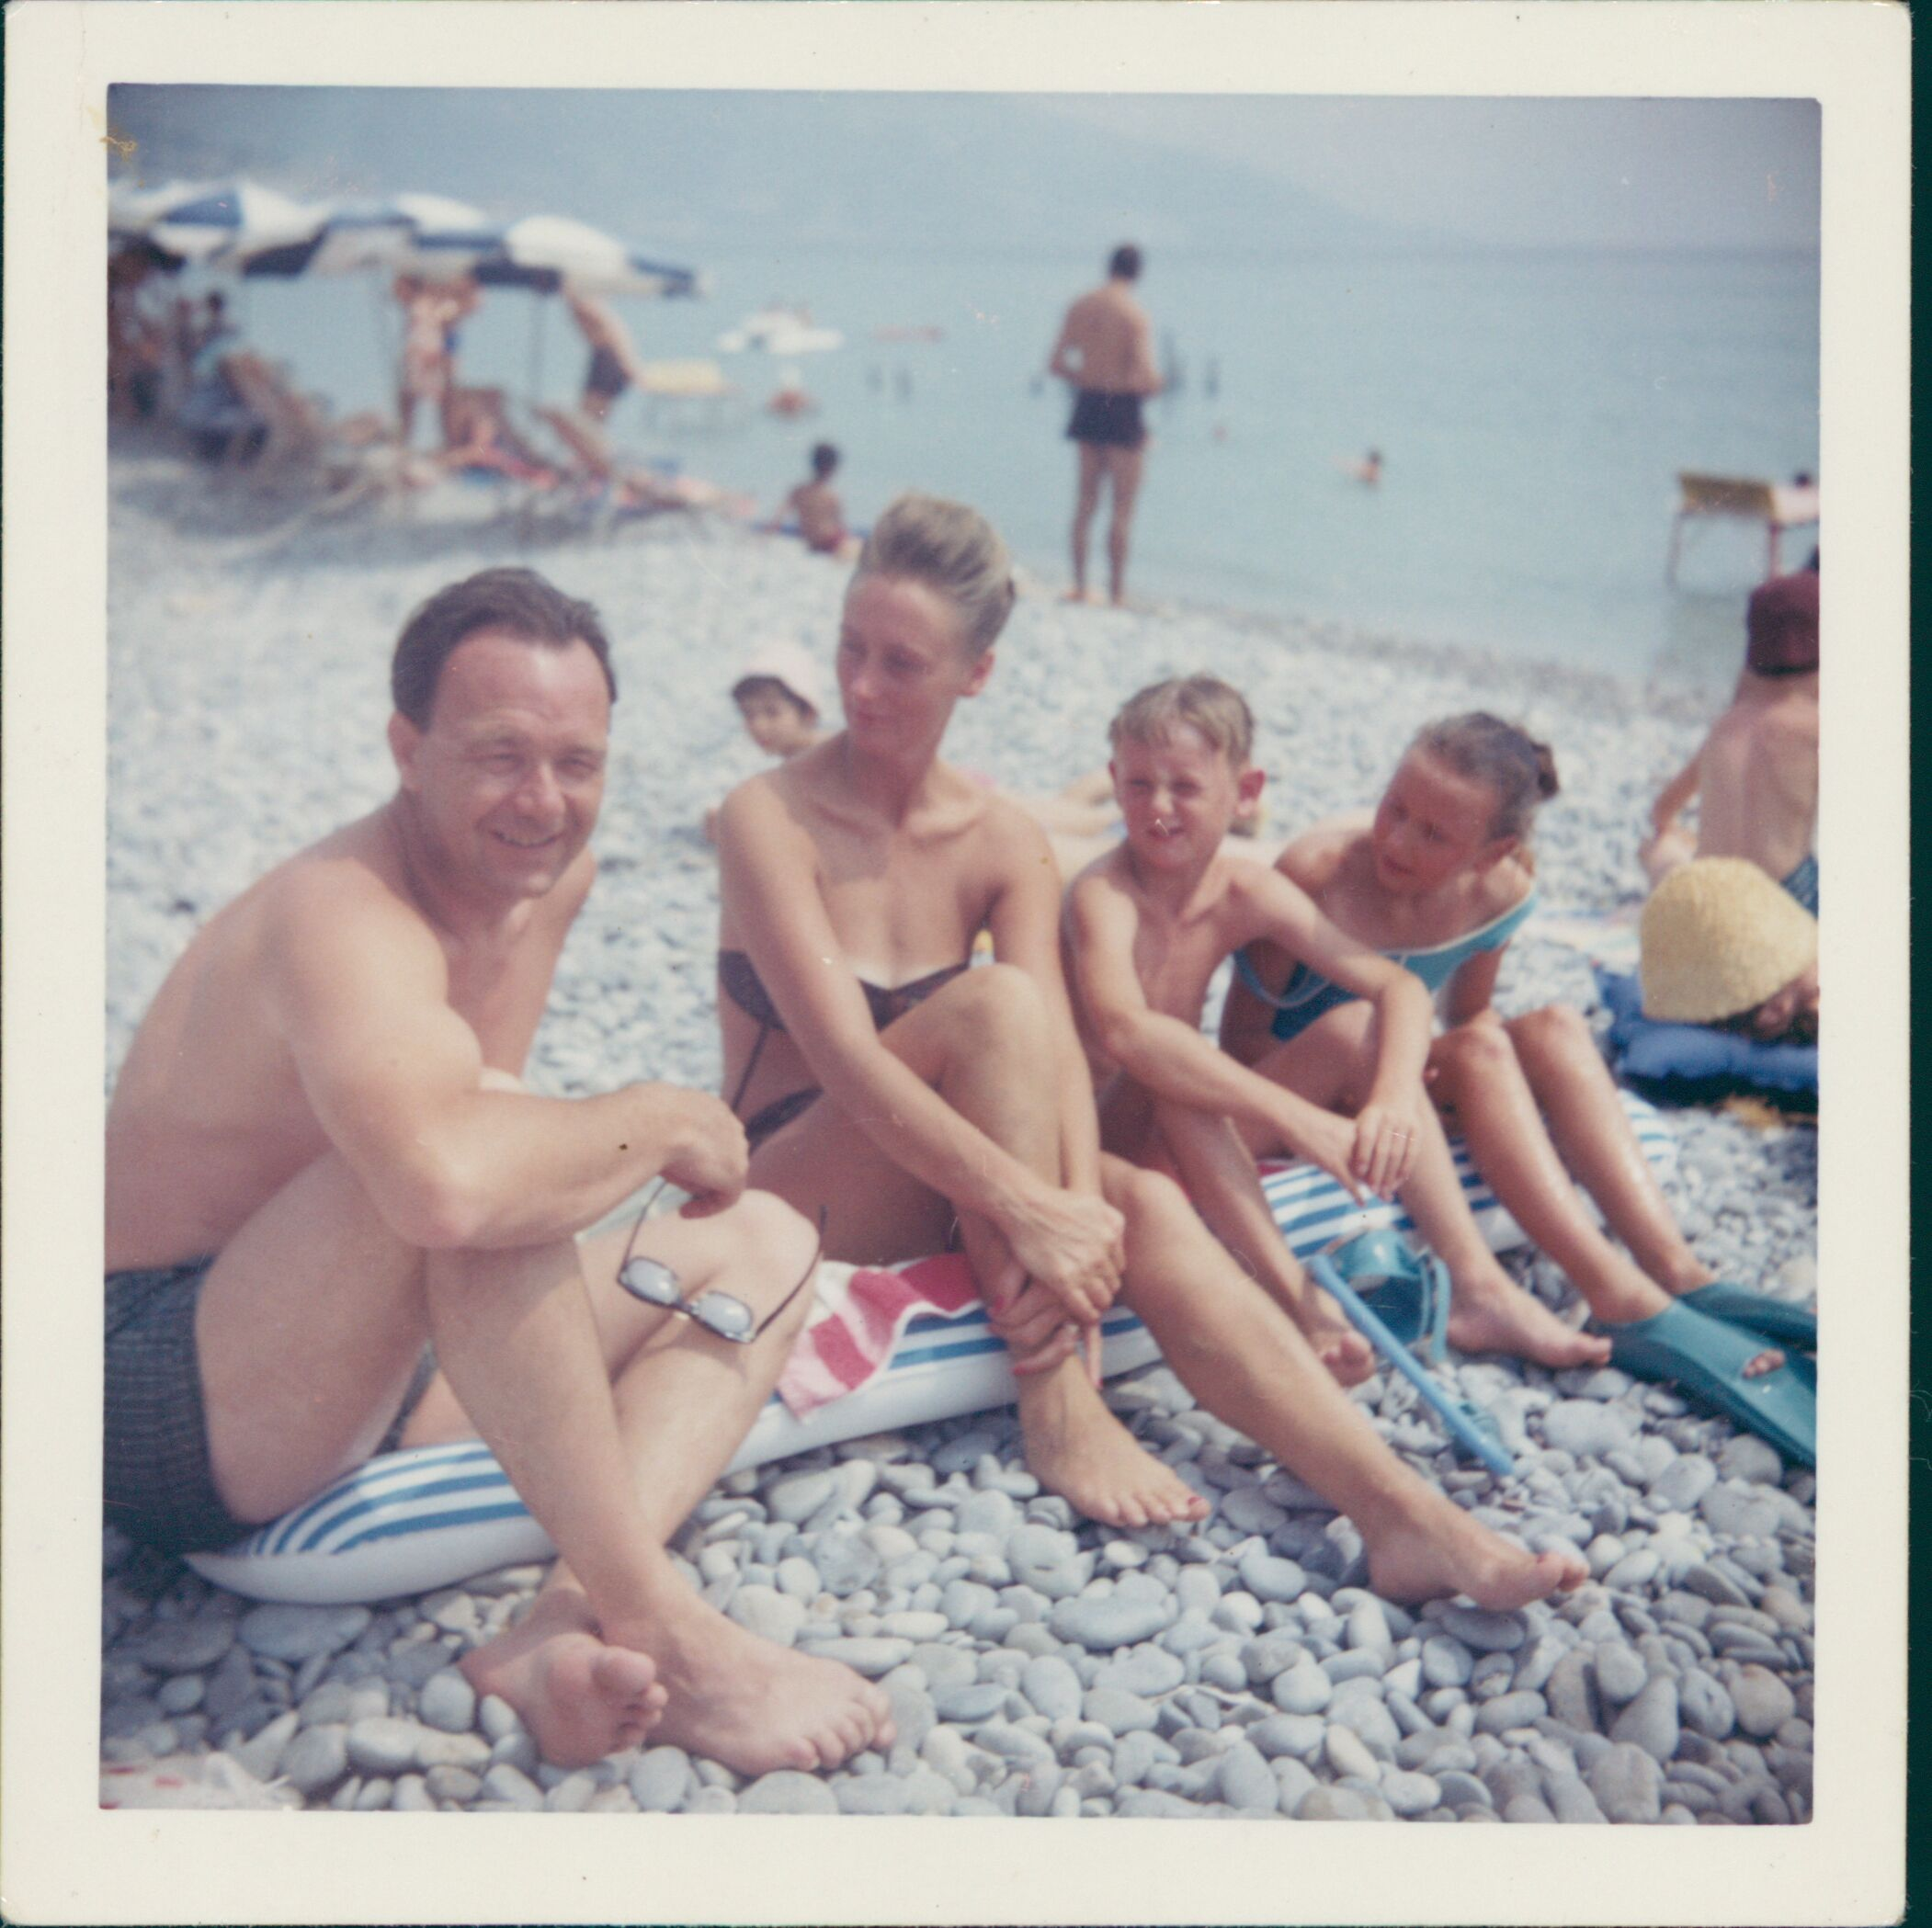 Scan of an old photograph showing a family enjoying a day at the beach.